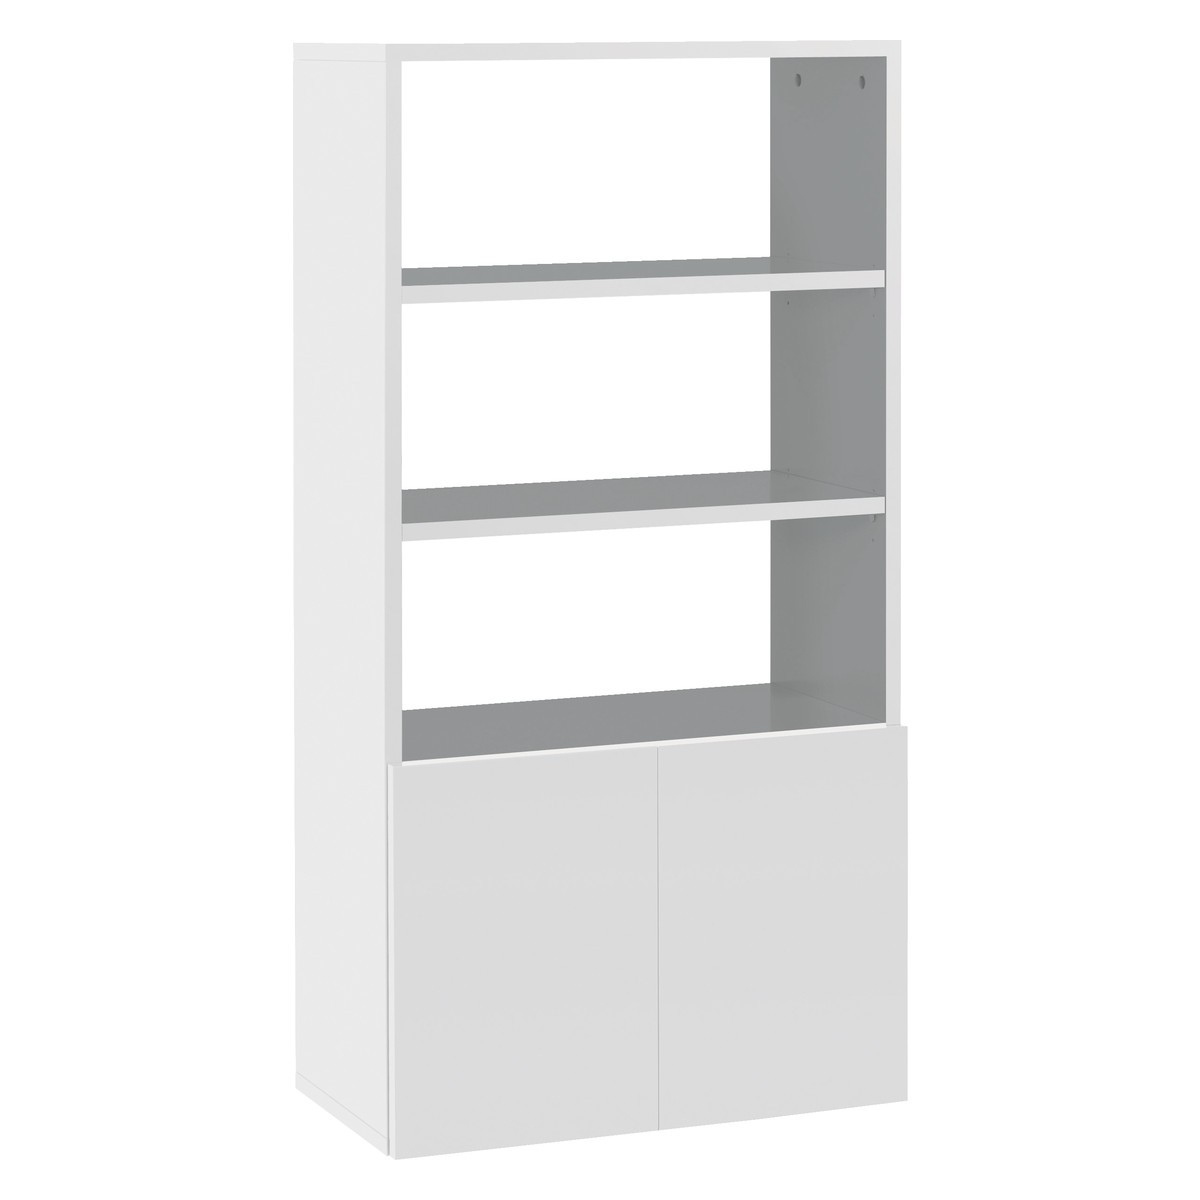 Kubrik White High Gloss Short Shelving Unit Buy Now At Habitat Uk Within White Shelving Units (#8 of 15)